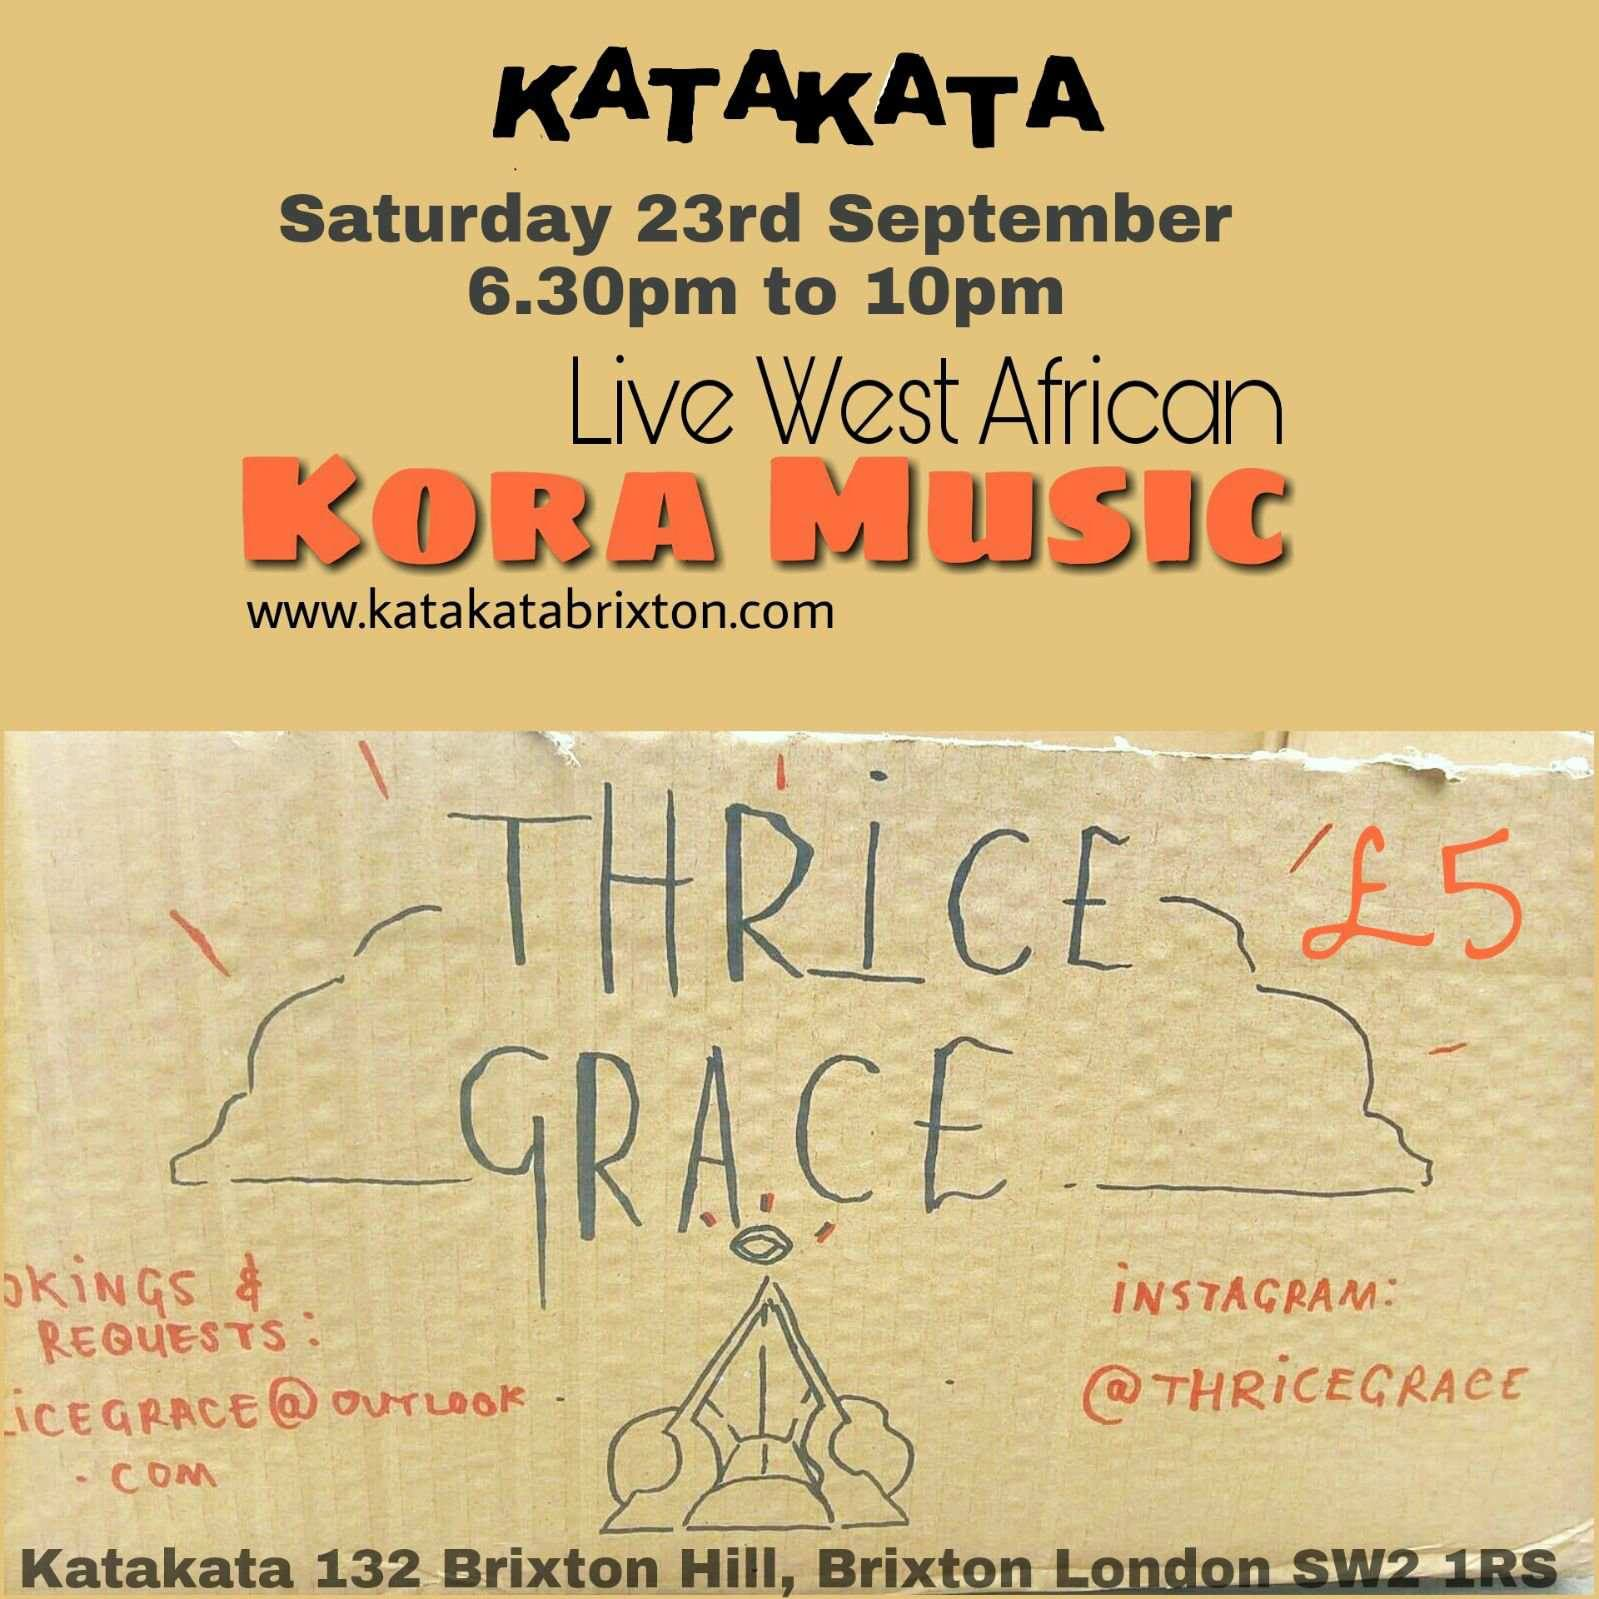 West African Kora music with Thrice Grace